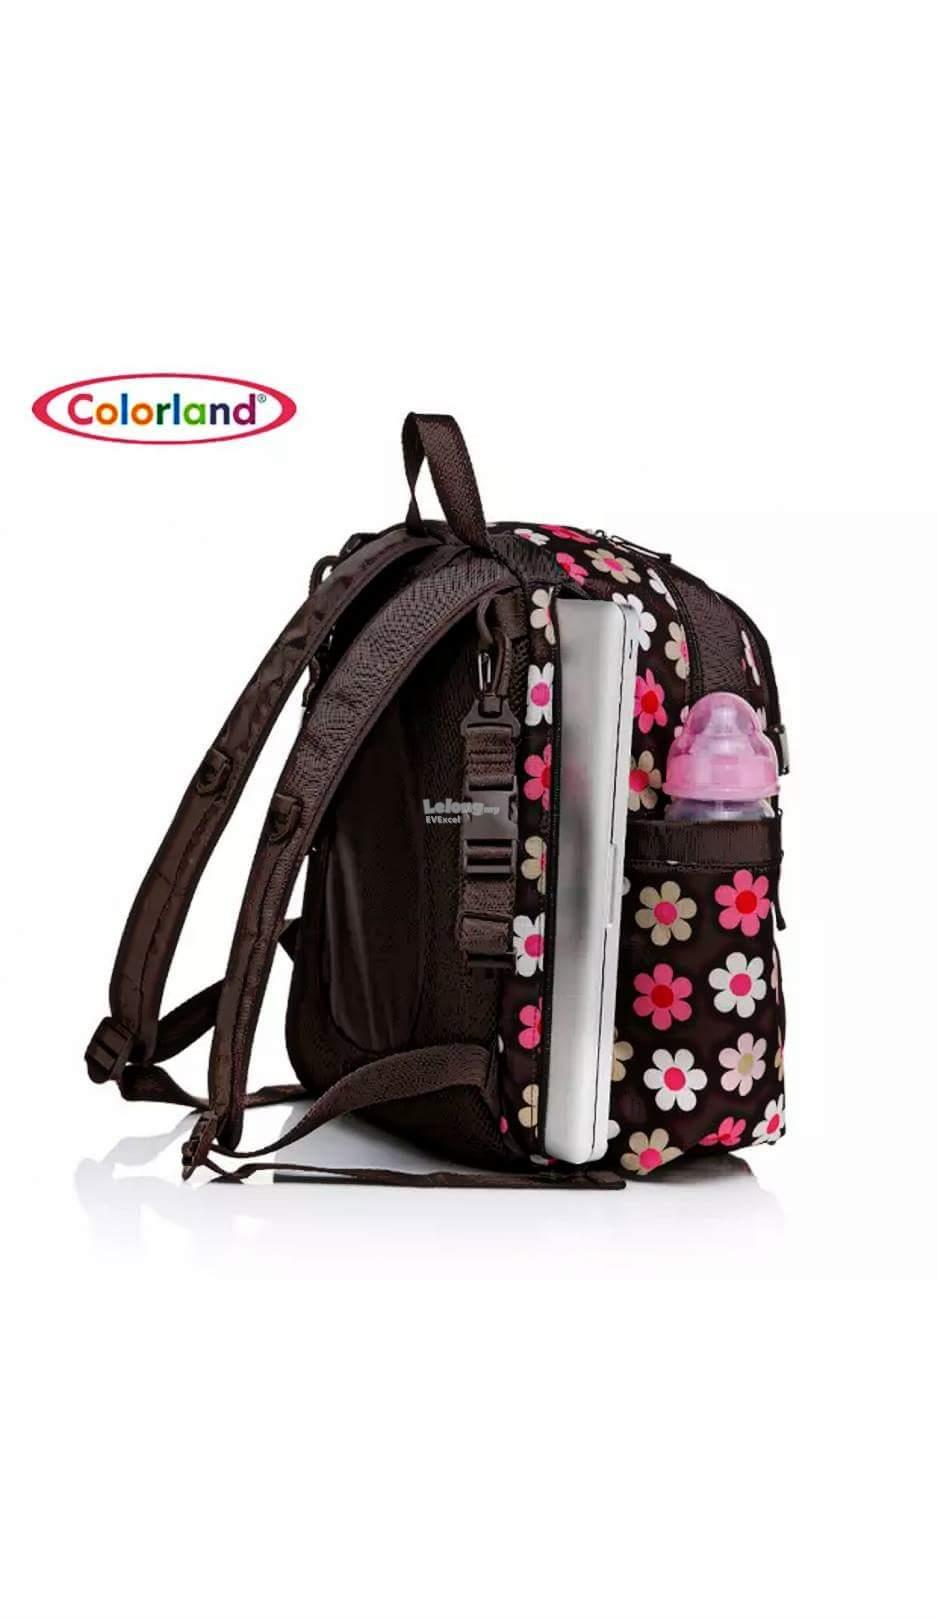 Colorland Abbey Ergo Baby Changing Backpack - Type D